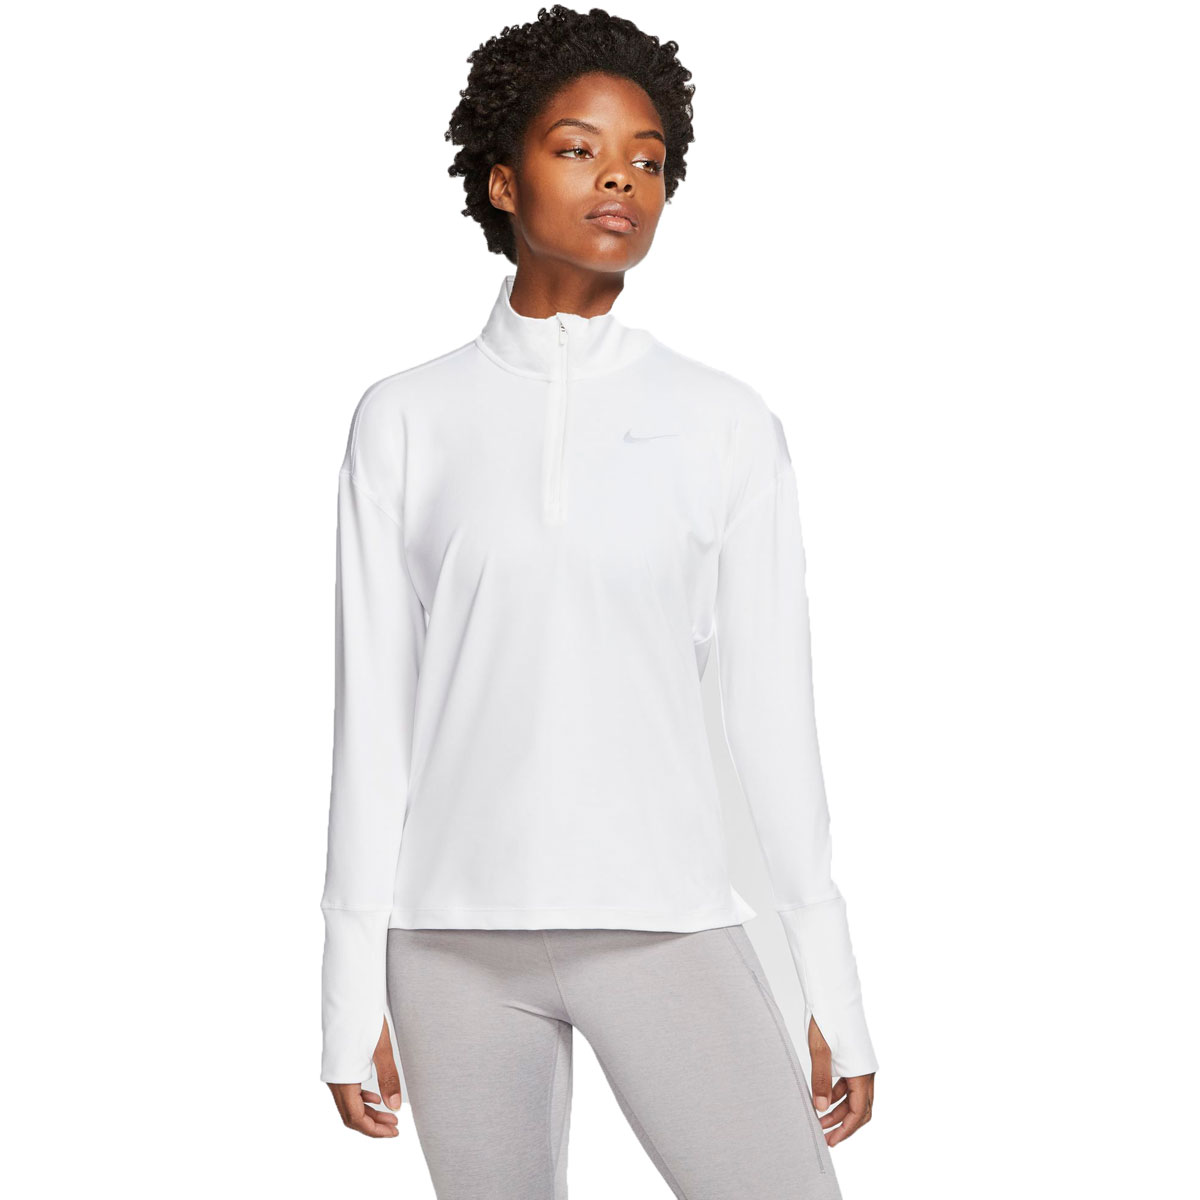 Women's Nike Element 1/2-Zip Running Top - Color: White/Reflective Silver - Size: S, White/Reflective Silver, large, image 1